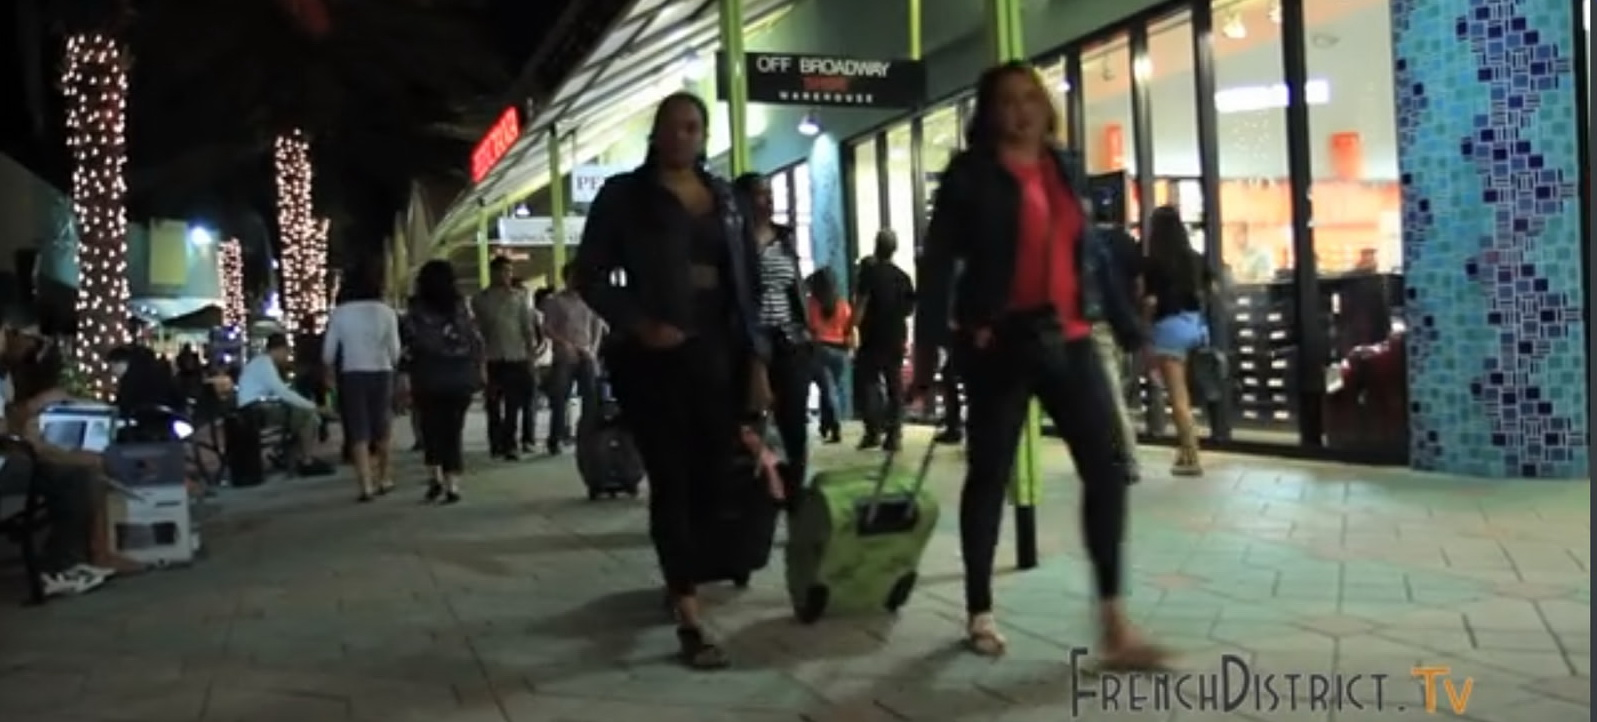 Thanksgiving et Black Friday en Floride – un reportage French District TV